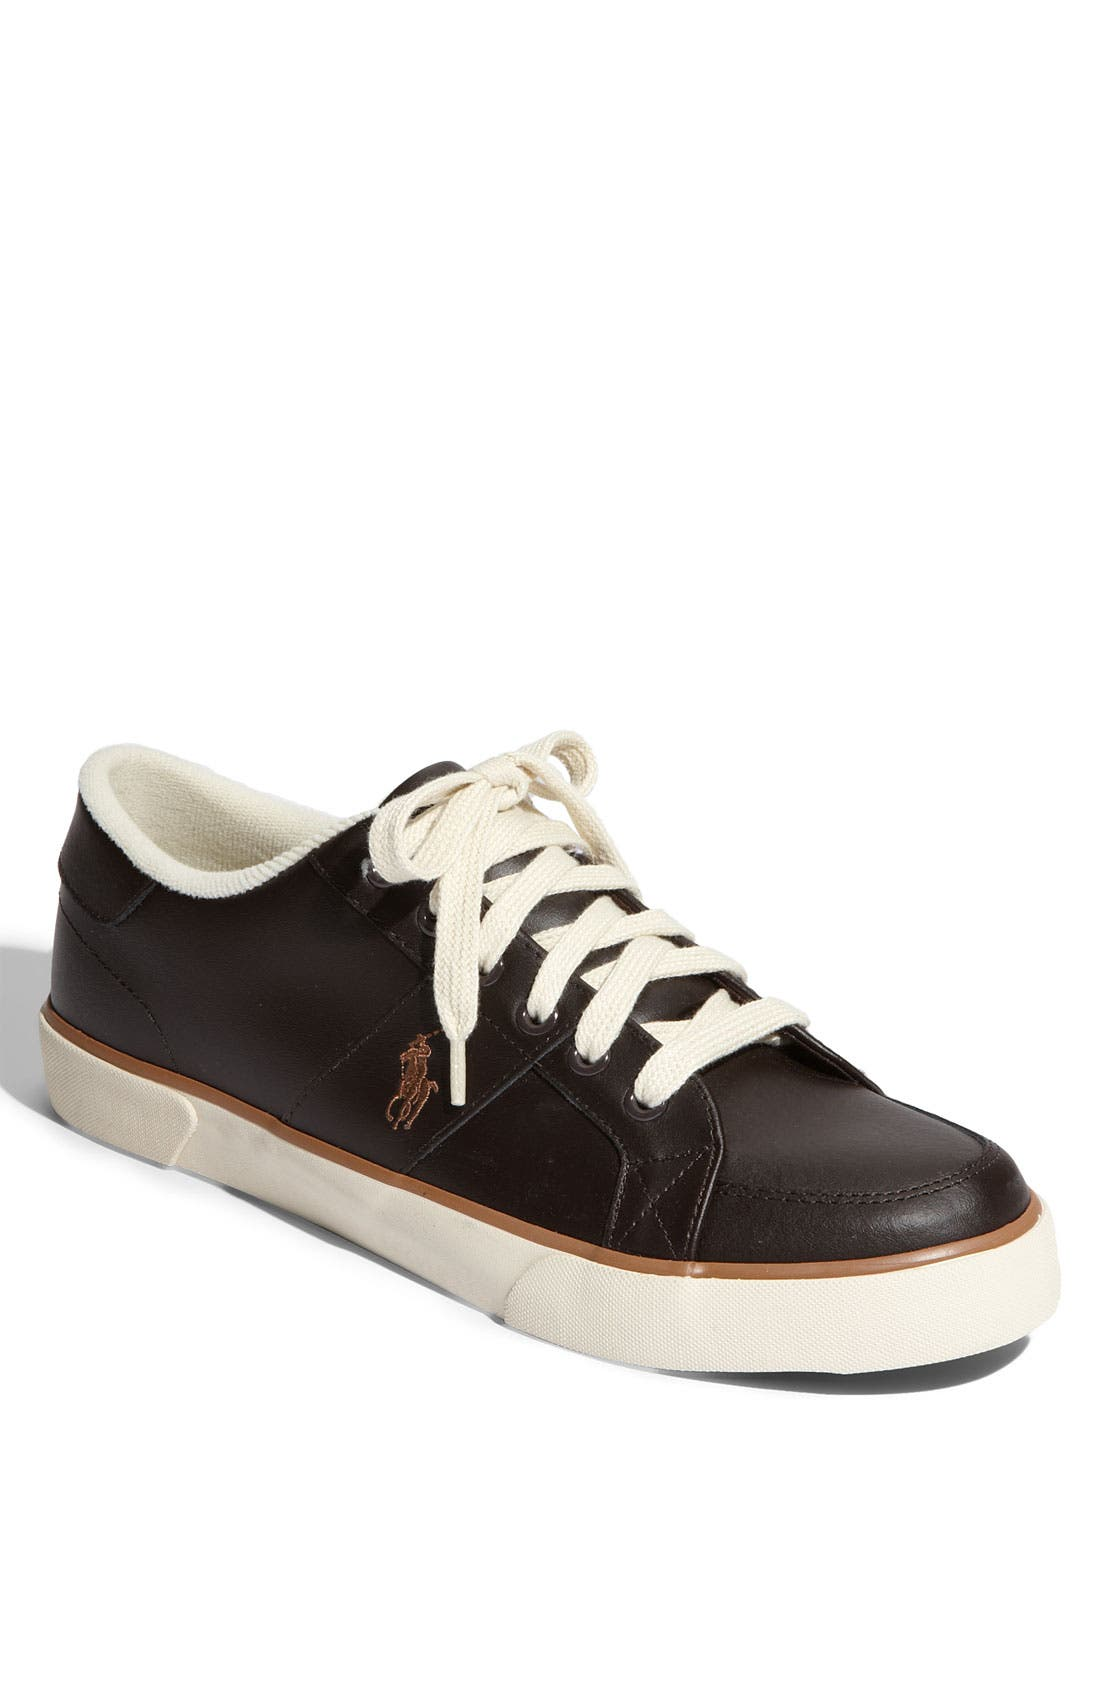 Alternate Image 1 Selected - Polo Ralph Lauren 'Harold' Sneaker